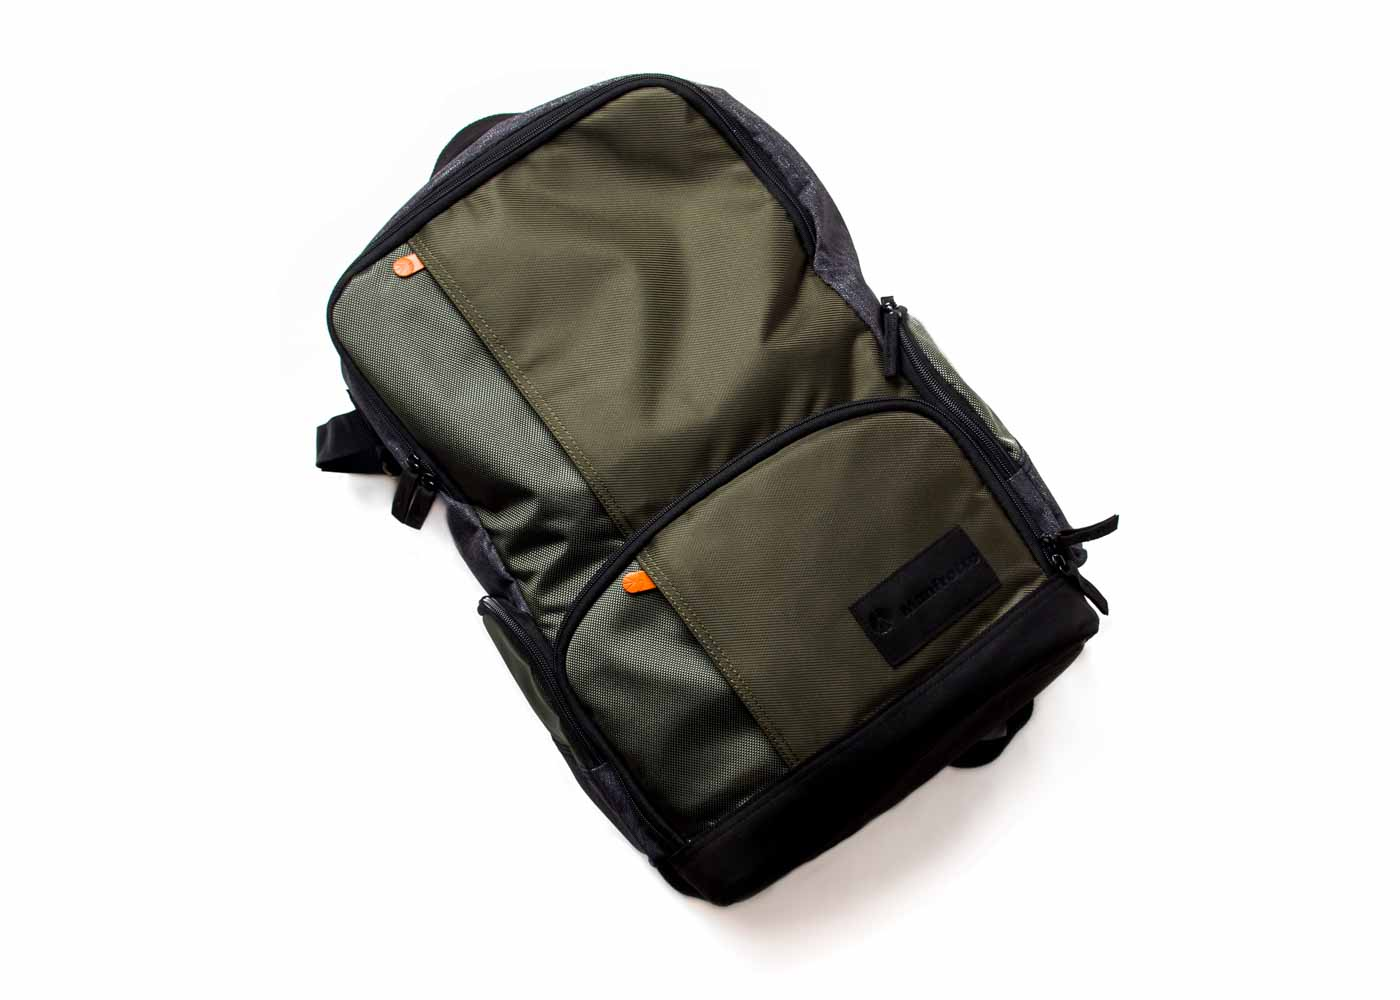 Manfrotto's backpack, ideal for the photographer on the go.